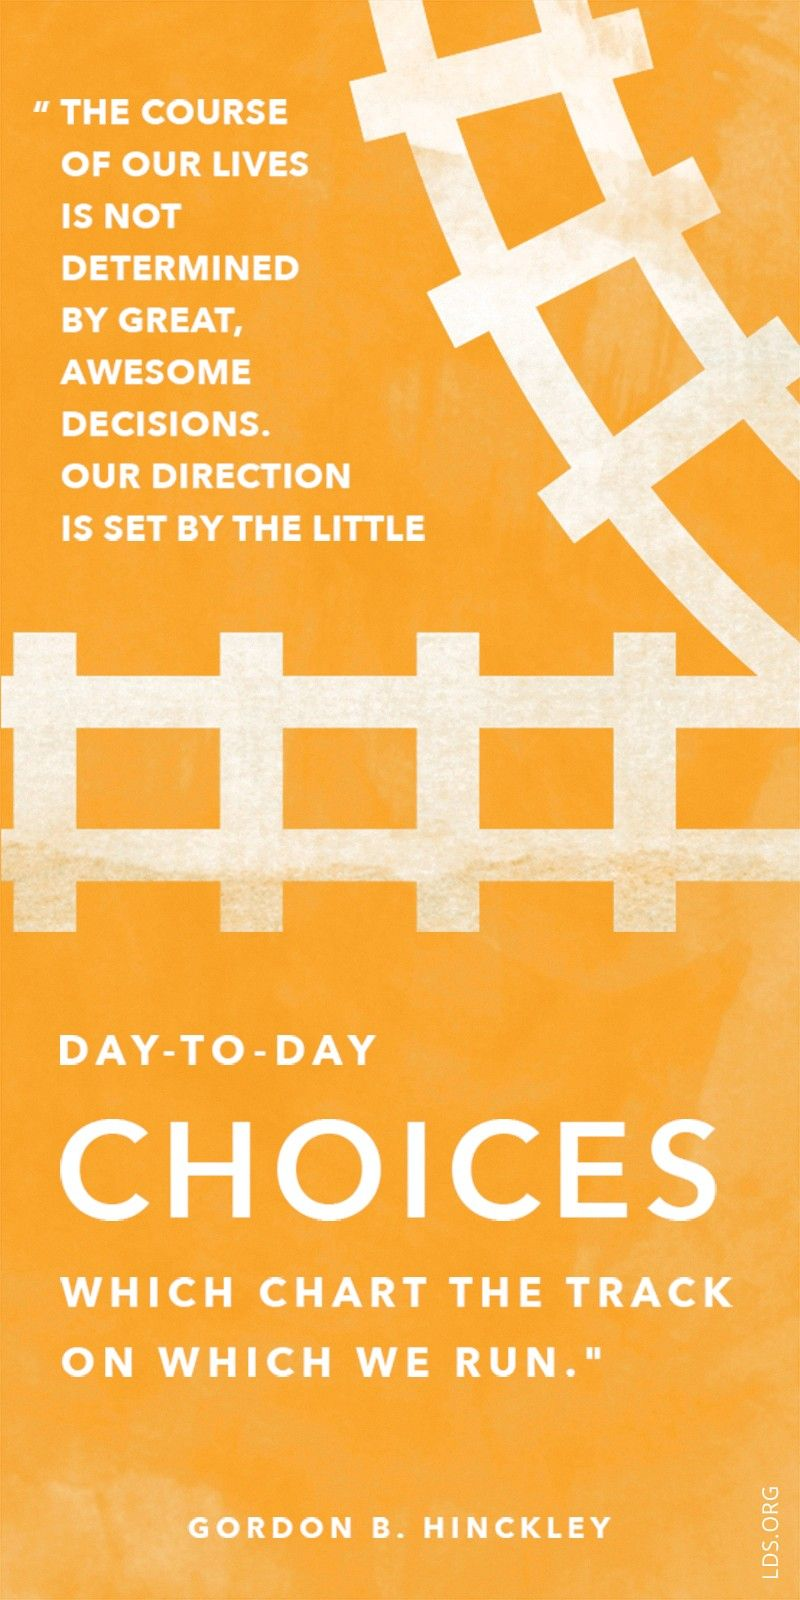 """""""The course of our lives is not determined by great, awesome decisions. Our direction is set by the little day-to-day choices which chart the track on which we run.""""—President Gordon B. Hinckley, """"Watch the Switches in Your Life"""""""